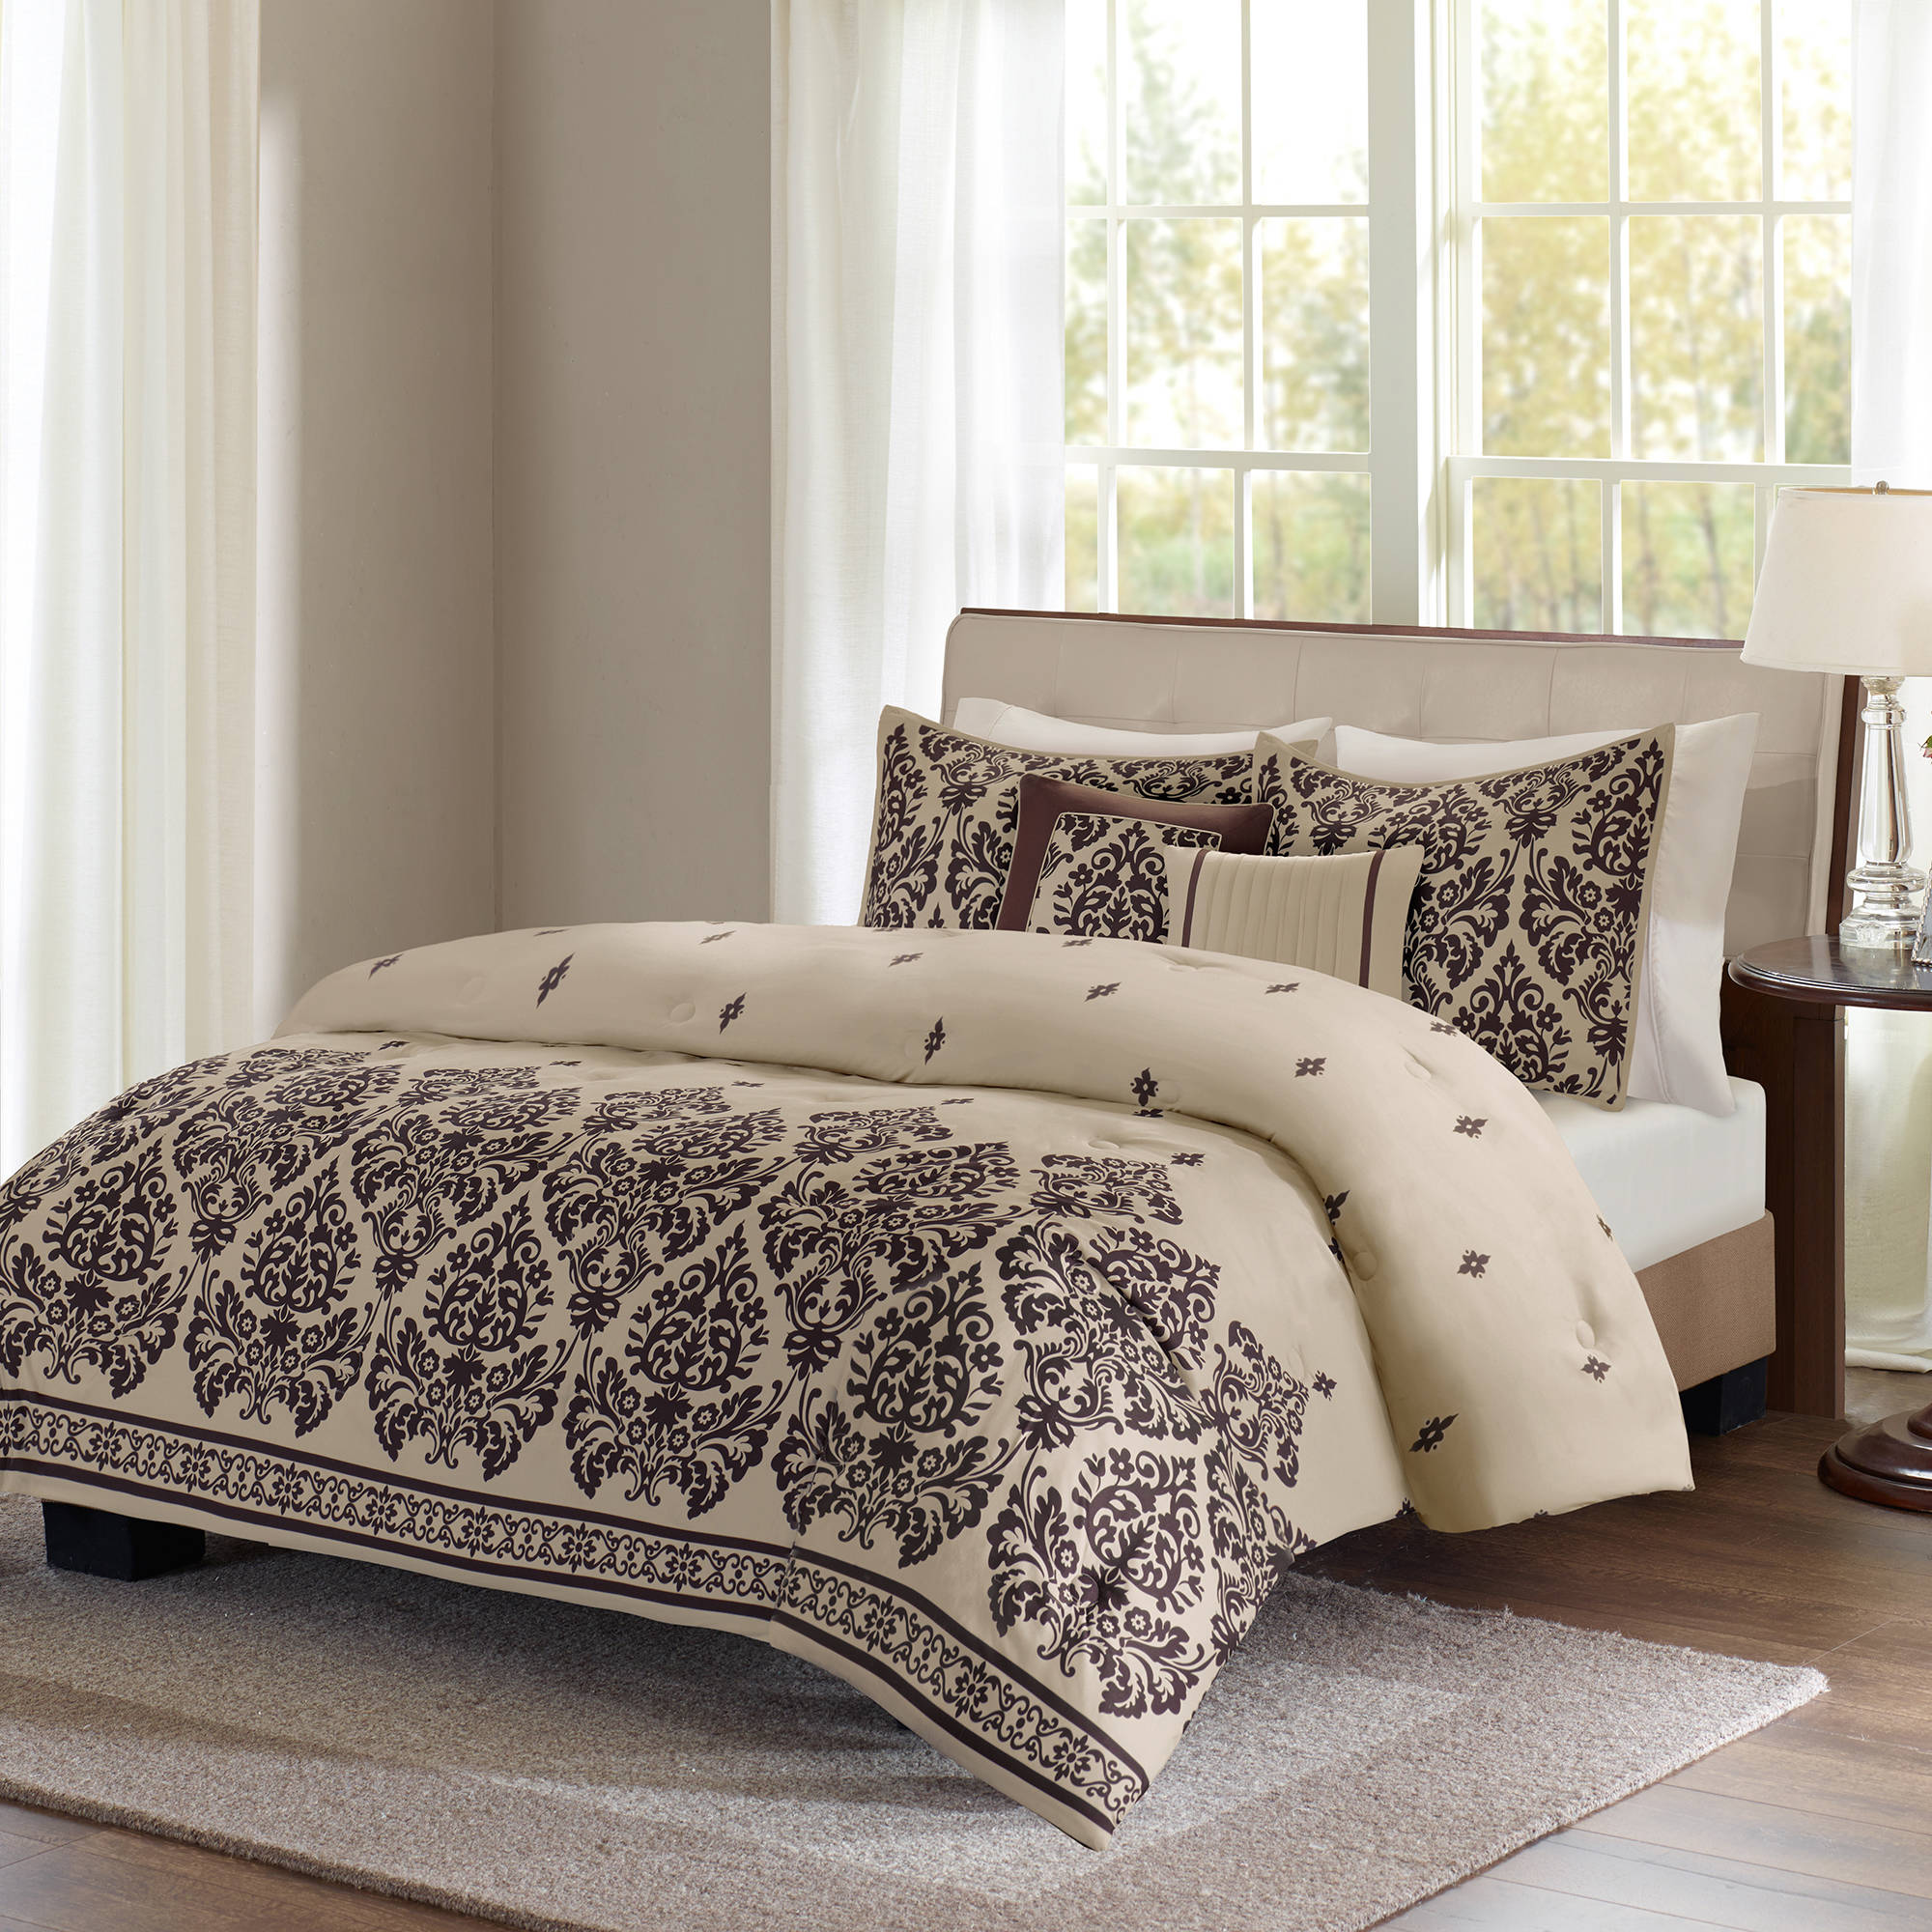 Better Homes and Gardens 5pc Damask Comforter Set